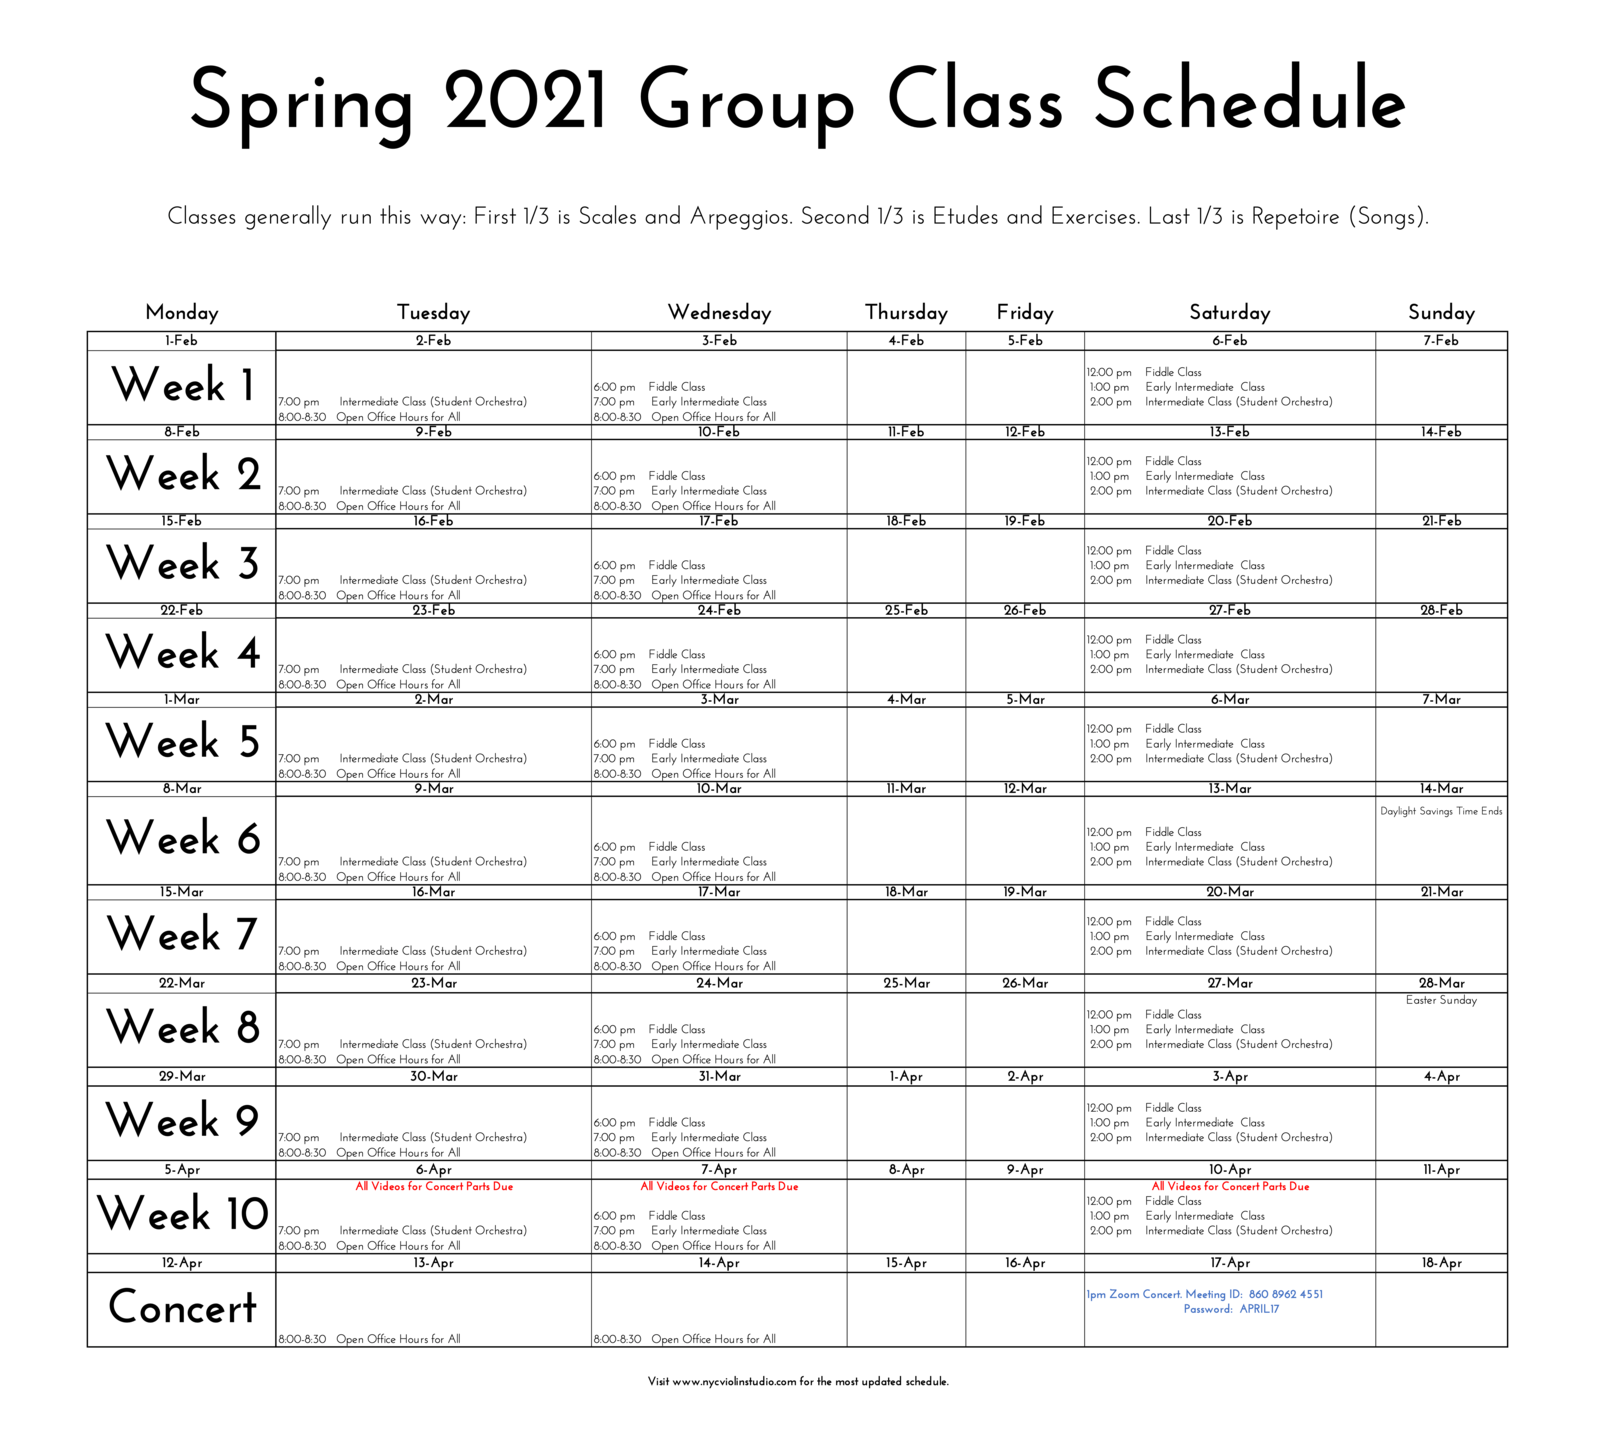 Spring 2021 Group Violin Class Schedule